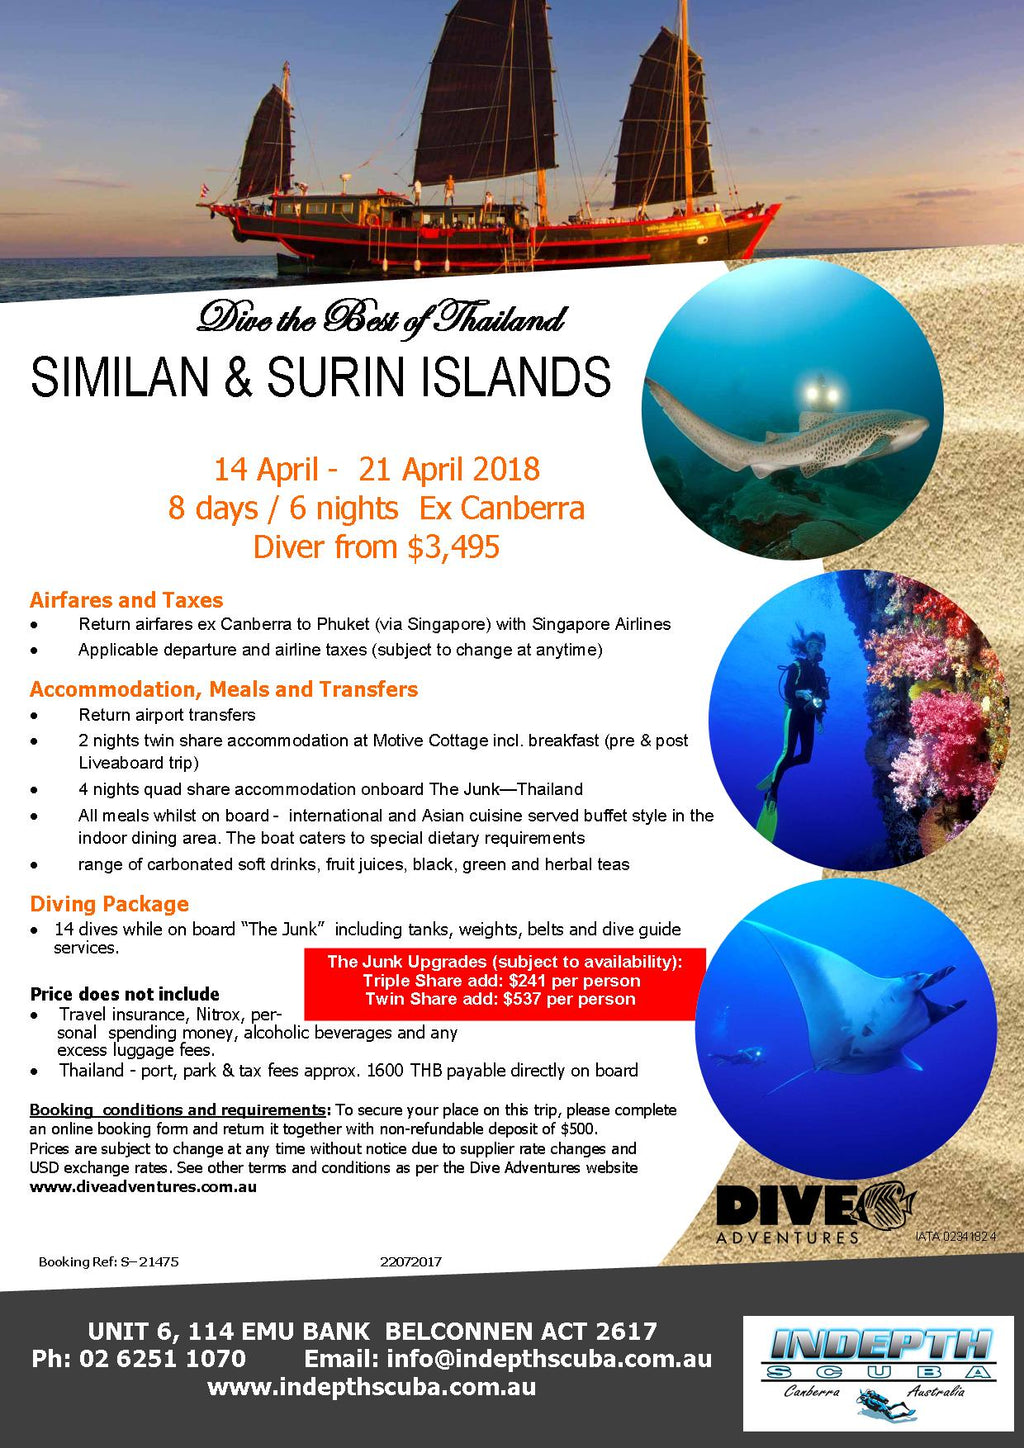 Dive the best of Thailand - The Similan & Surin islands - 14th April to 21st April 2018